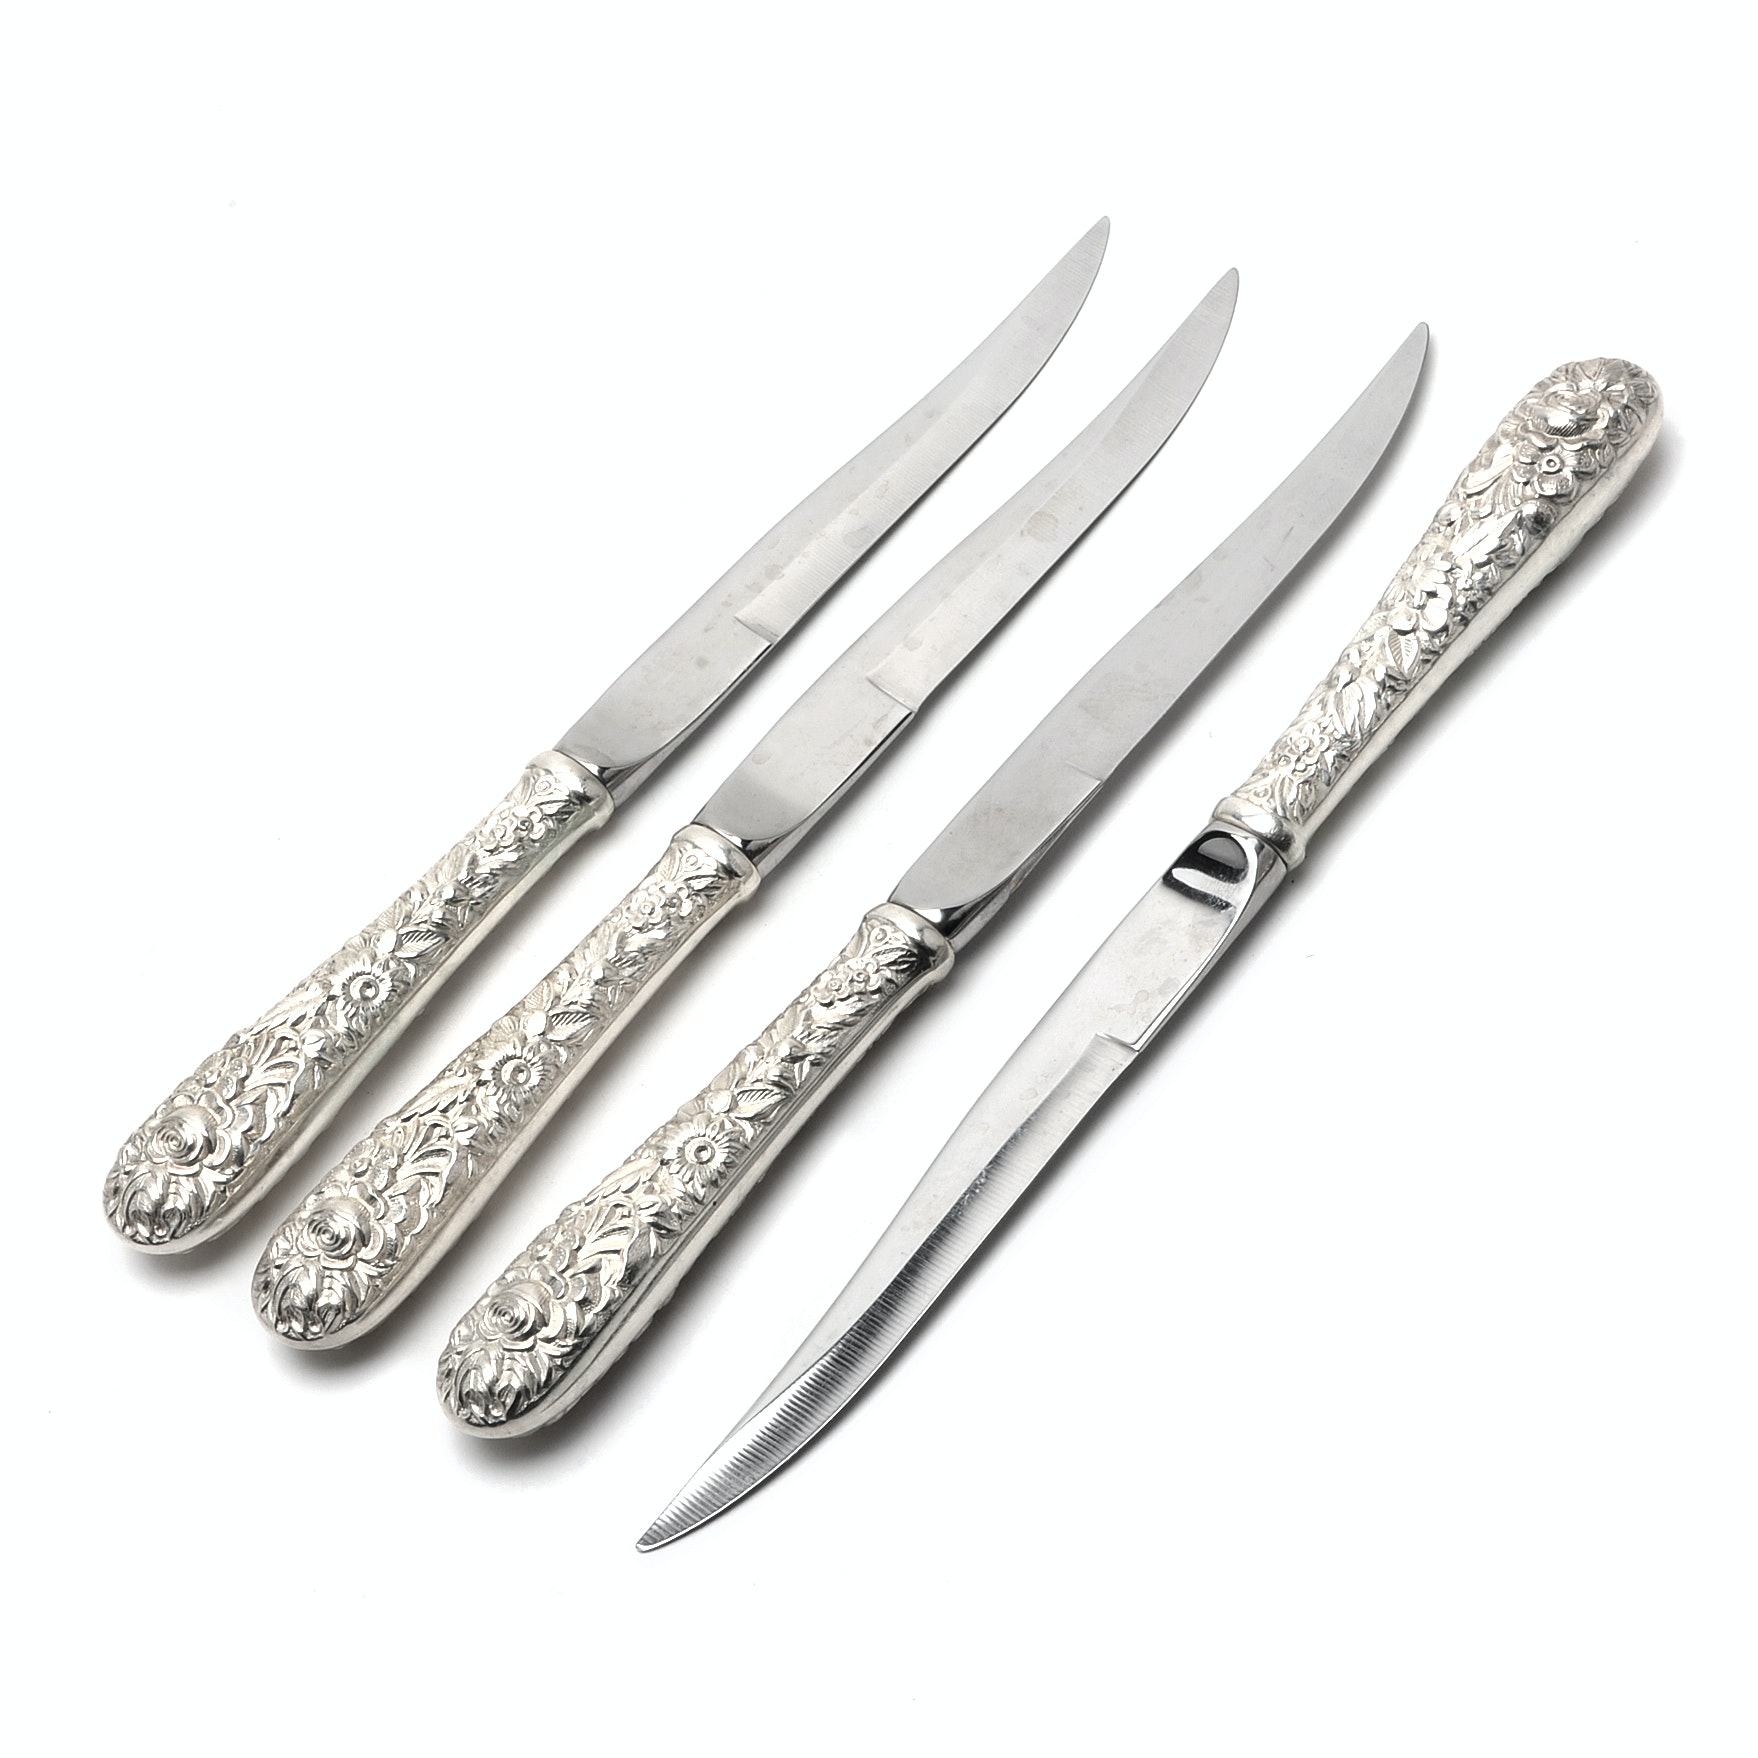 """Four Kirk Steiff """"Repousse"""" Steak Knives with Sterling Silver Handles"""